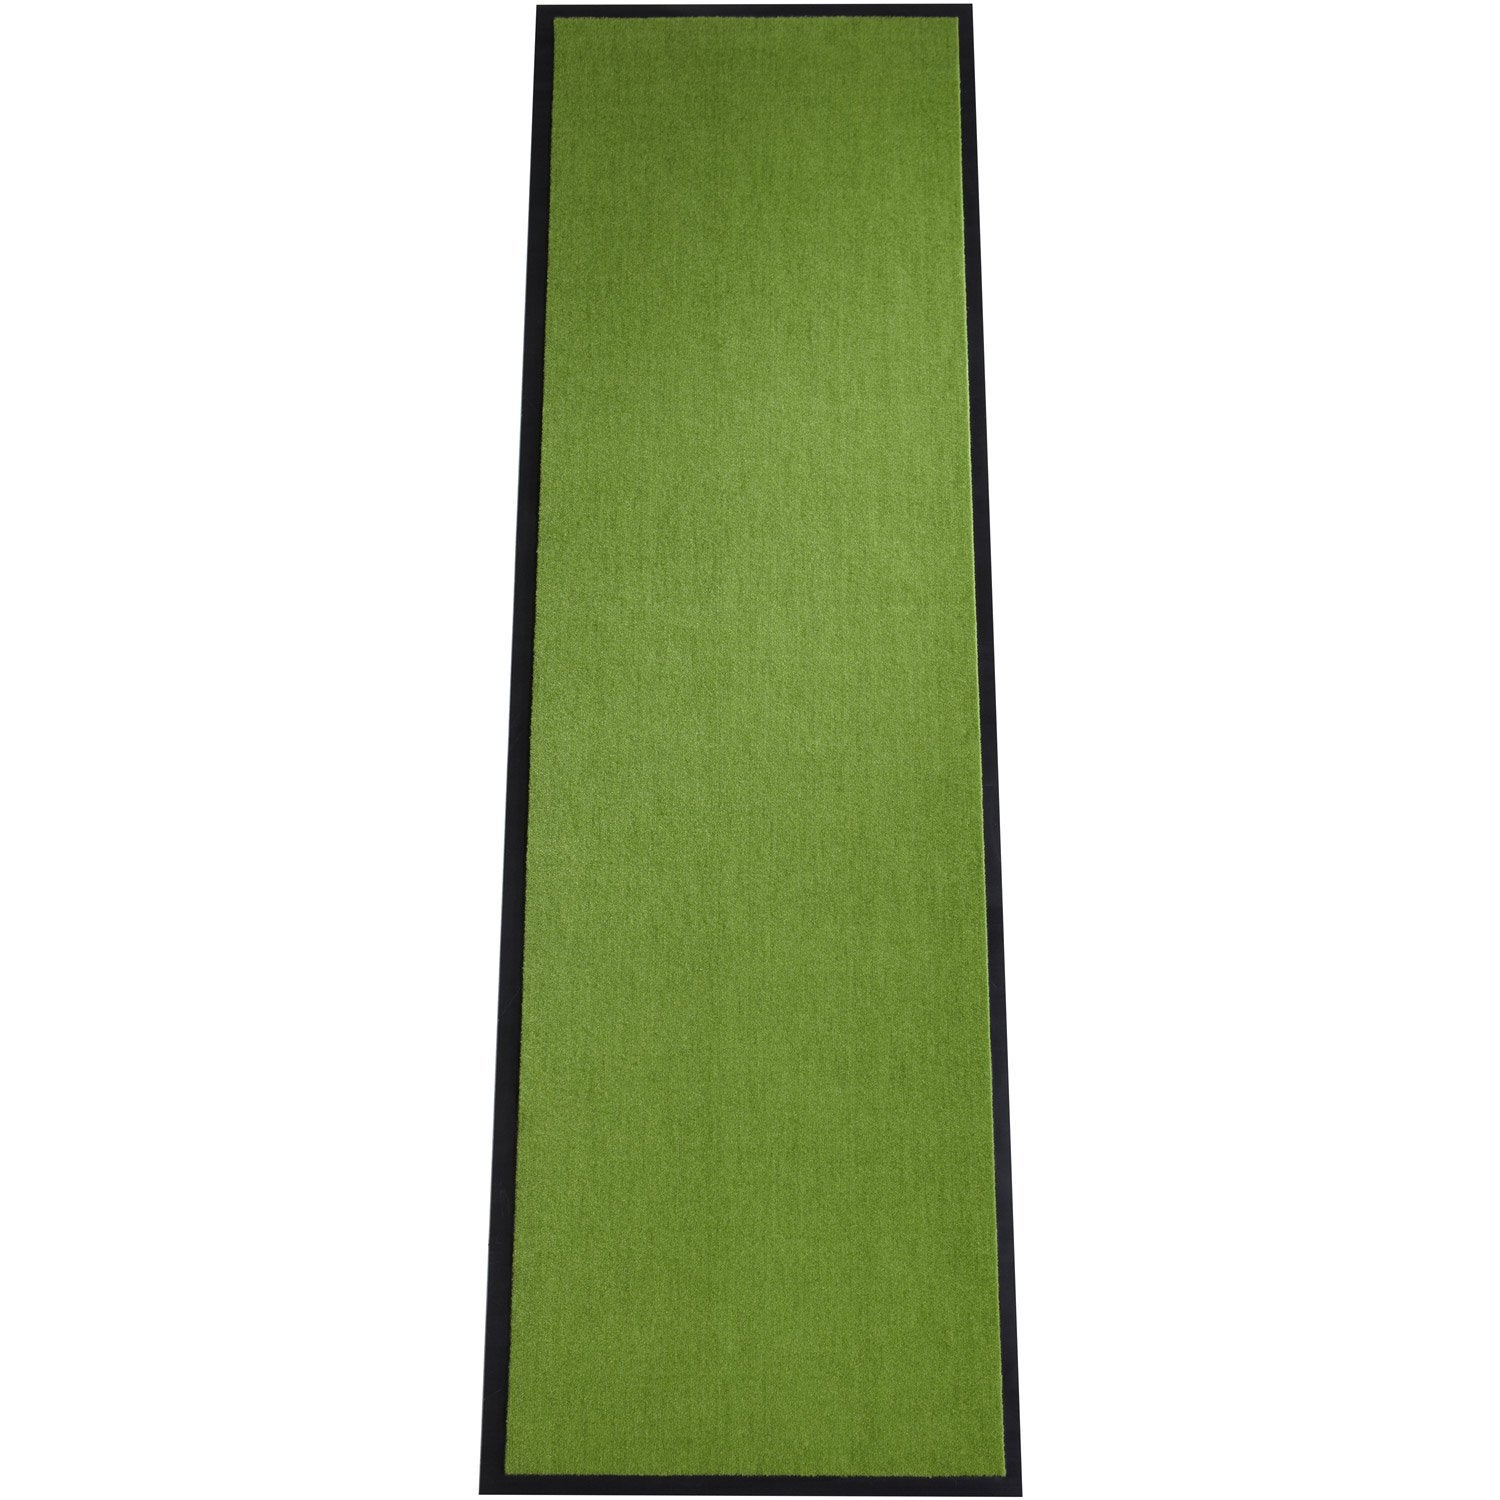 tapis antipoussi re mood vert pistache n 3 180 x 60 cm leroy merlin. Black Bedroom Furniture Sets. Home Design Ideas